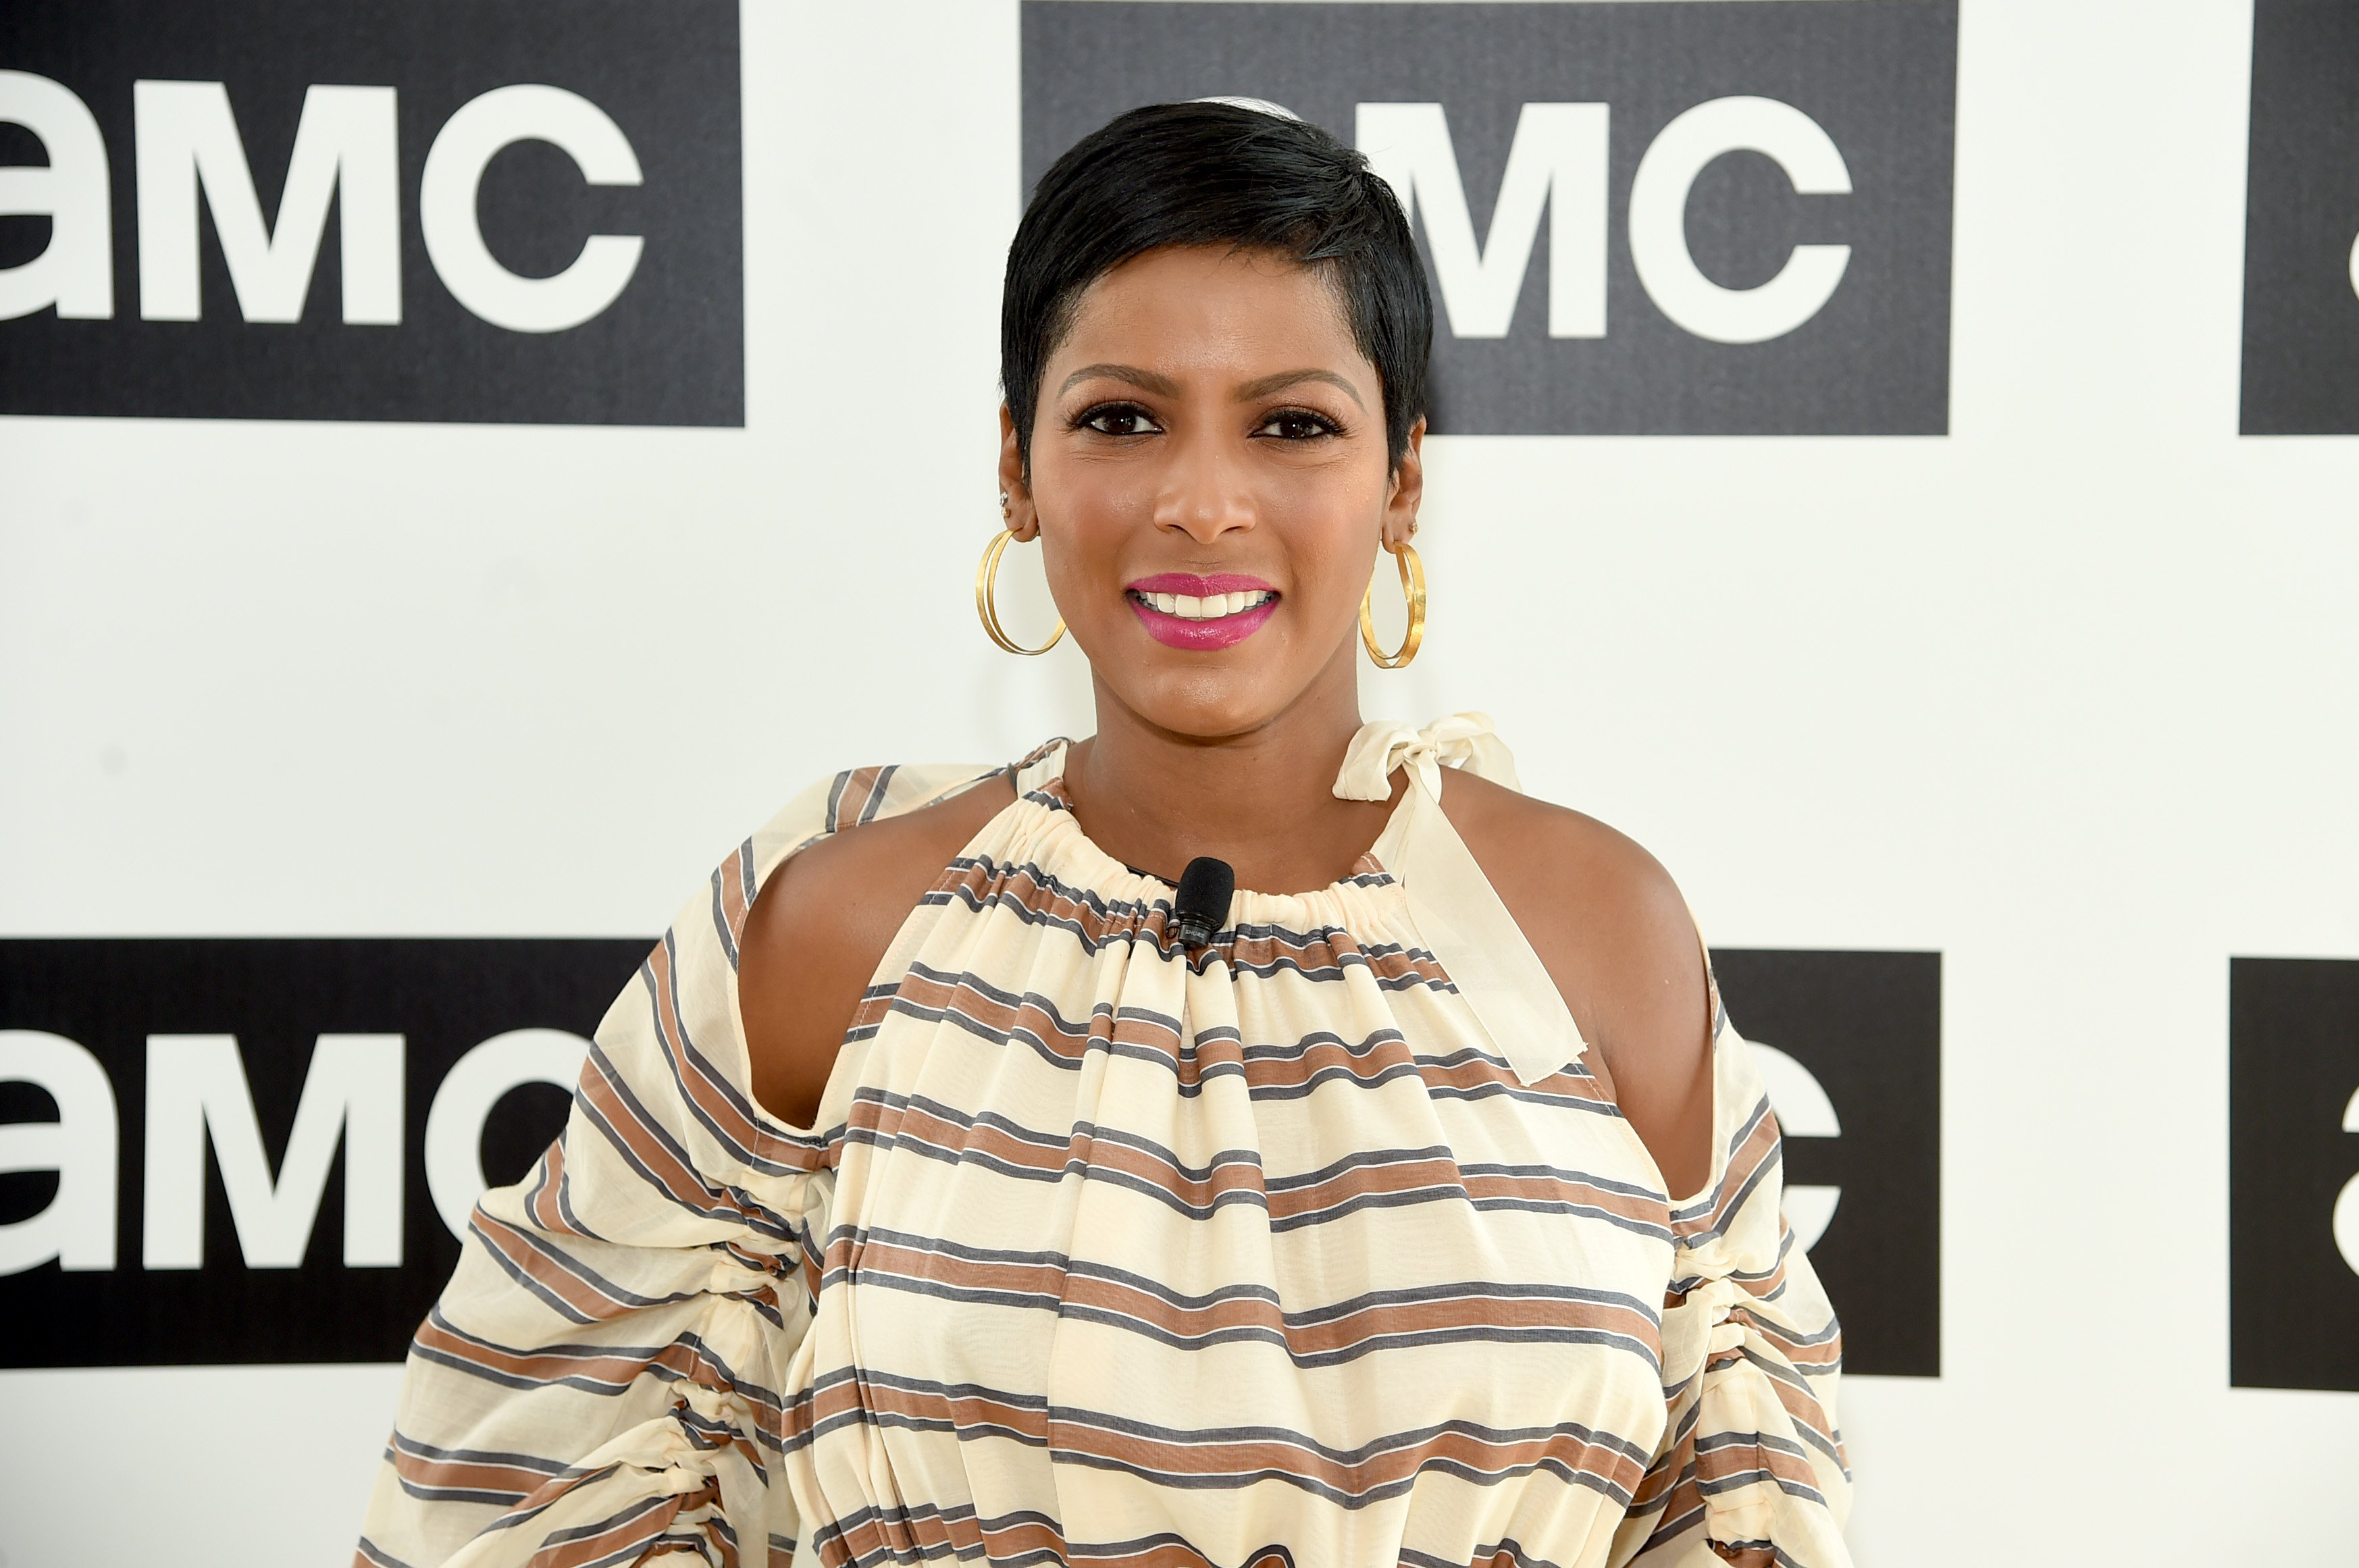 Tamron Hall attends the AMC Summit at Public Hotel on June 20, 2018 in New York City. | Photo: GettyImages